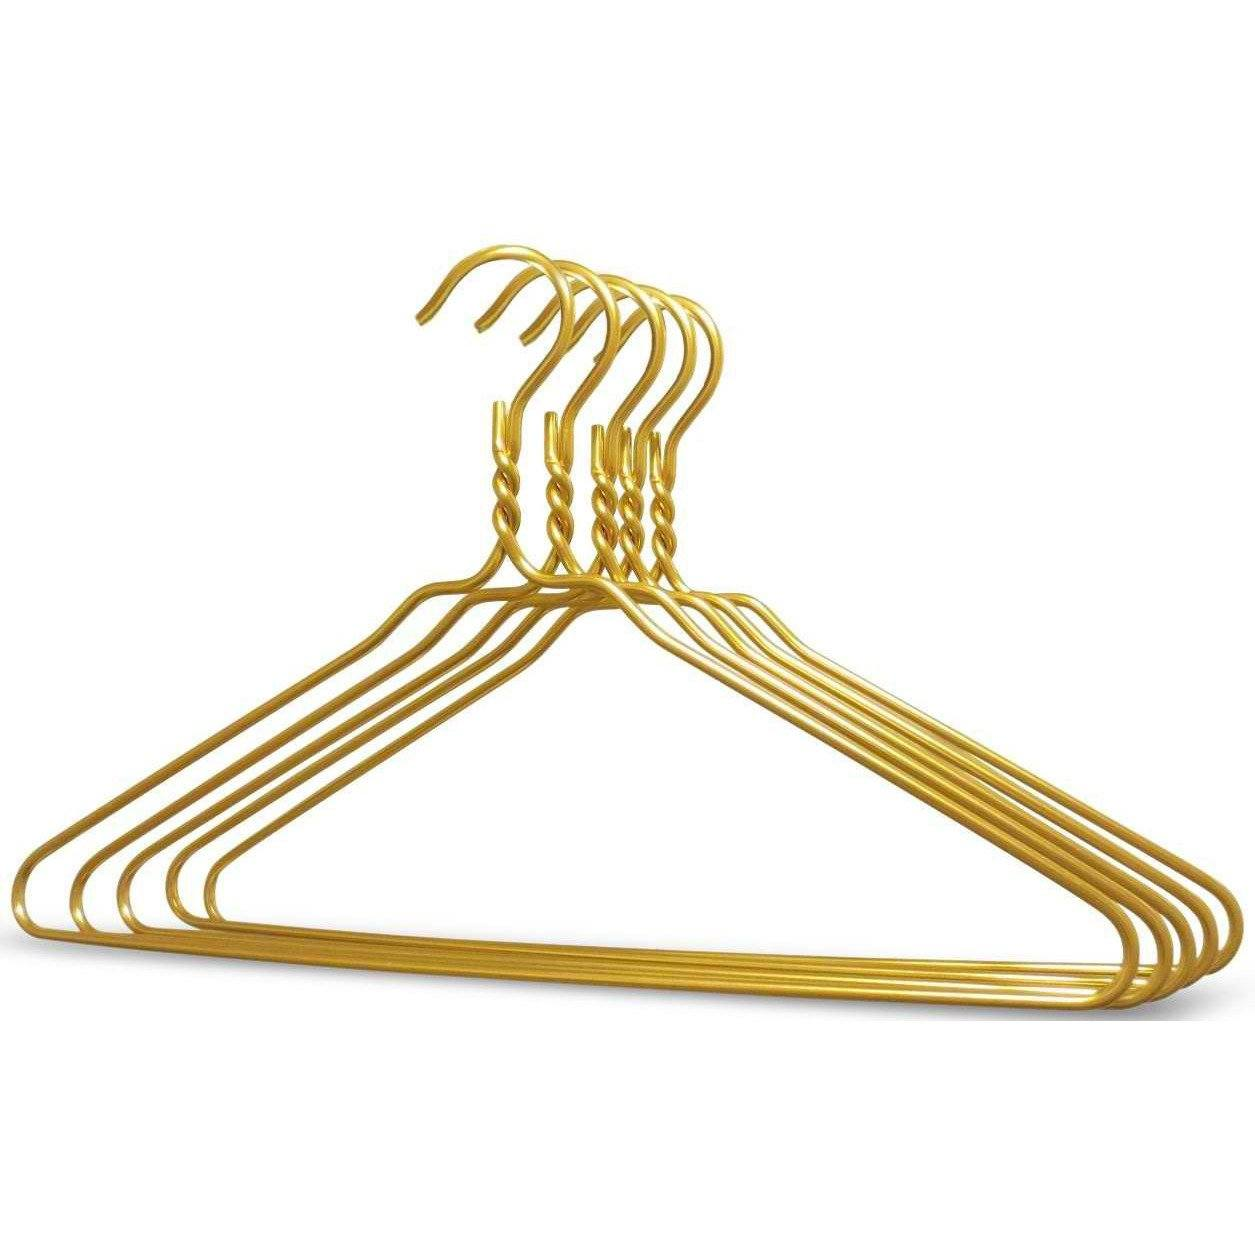 Heavy Duty Suit Hangers (10 Pack)